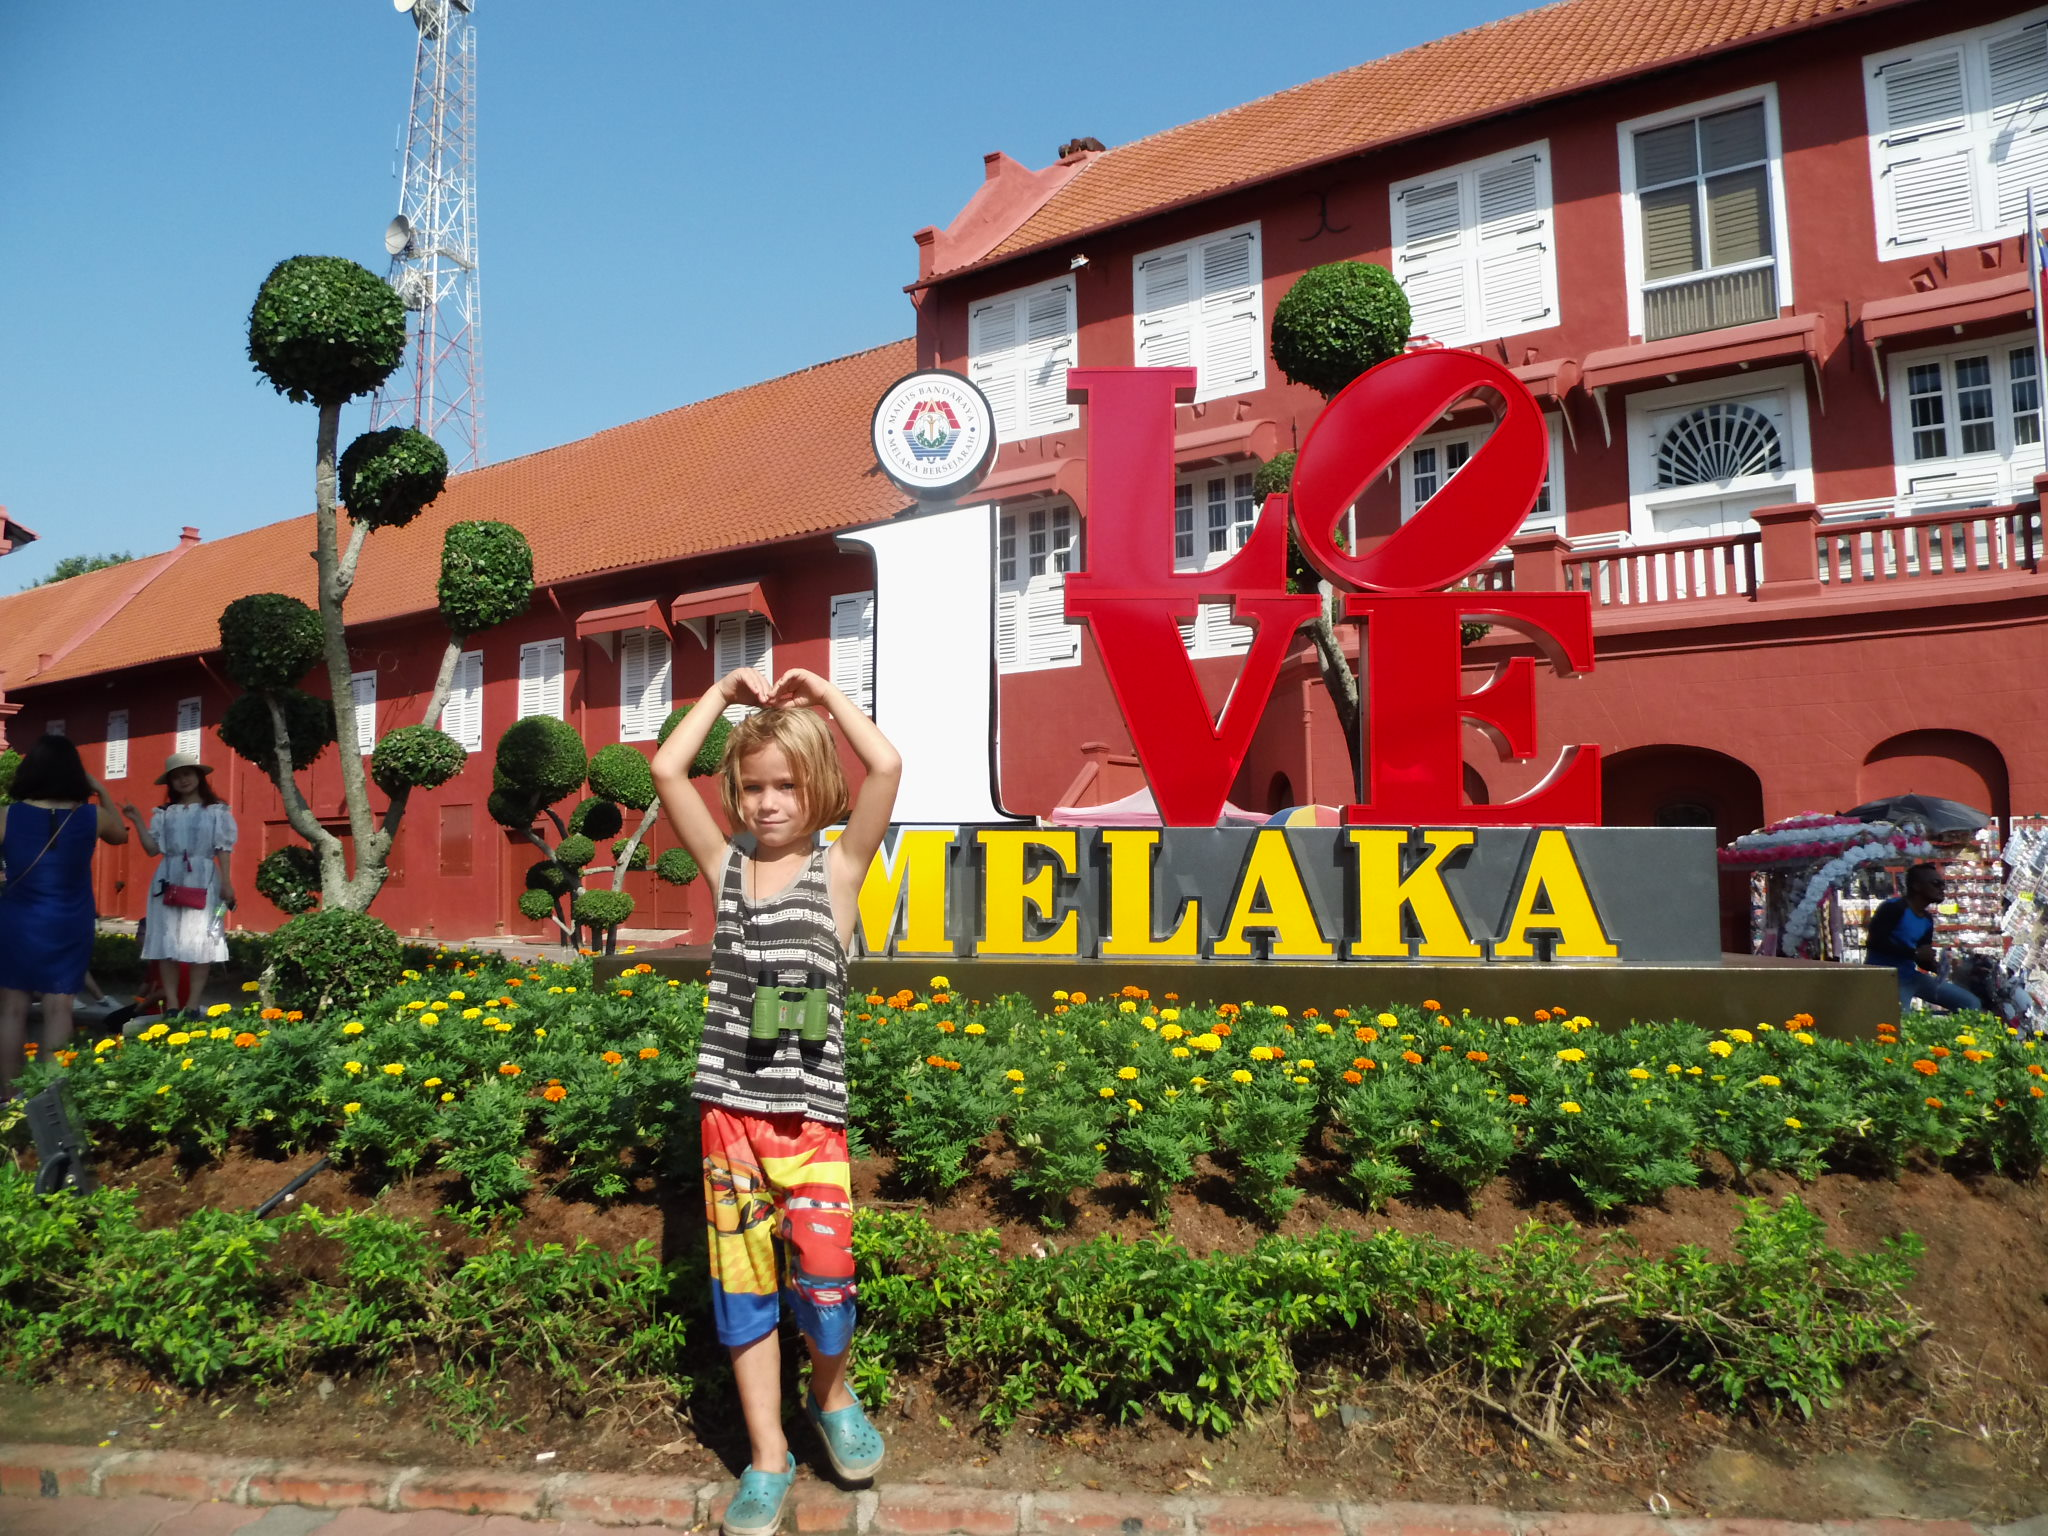 Melaka Dutch Square, Red House Clock Tower